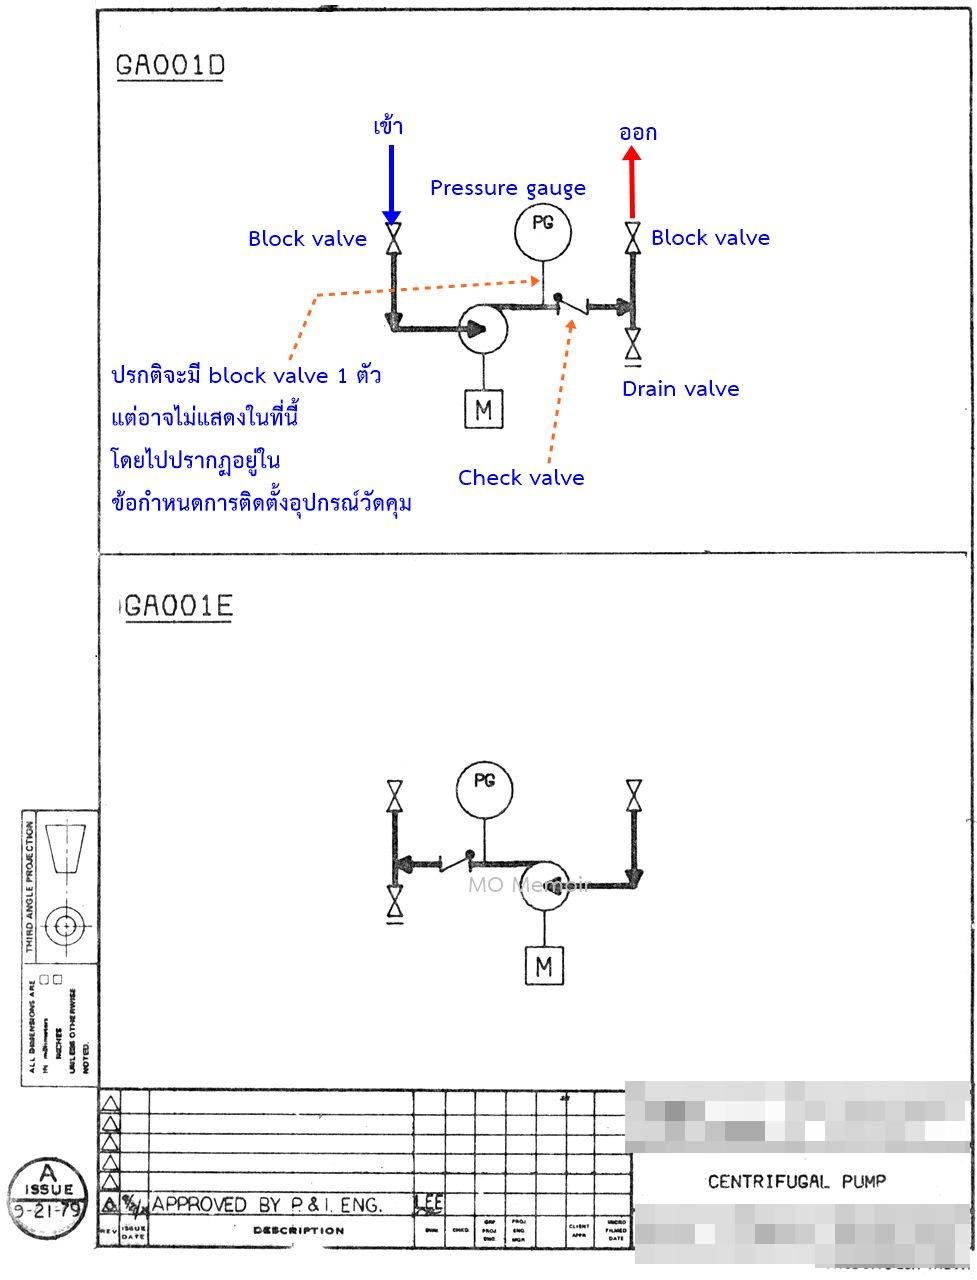 Centrifugal Pump Mechanical Seal Diagram Orbit Fan Wiring Mo Memoir : Memoirs Of Metal Oxide Catalyst Research Group: Piping And Instrumentation ...